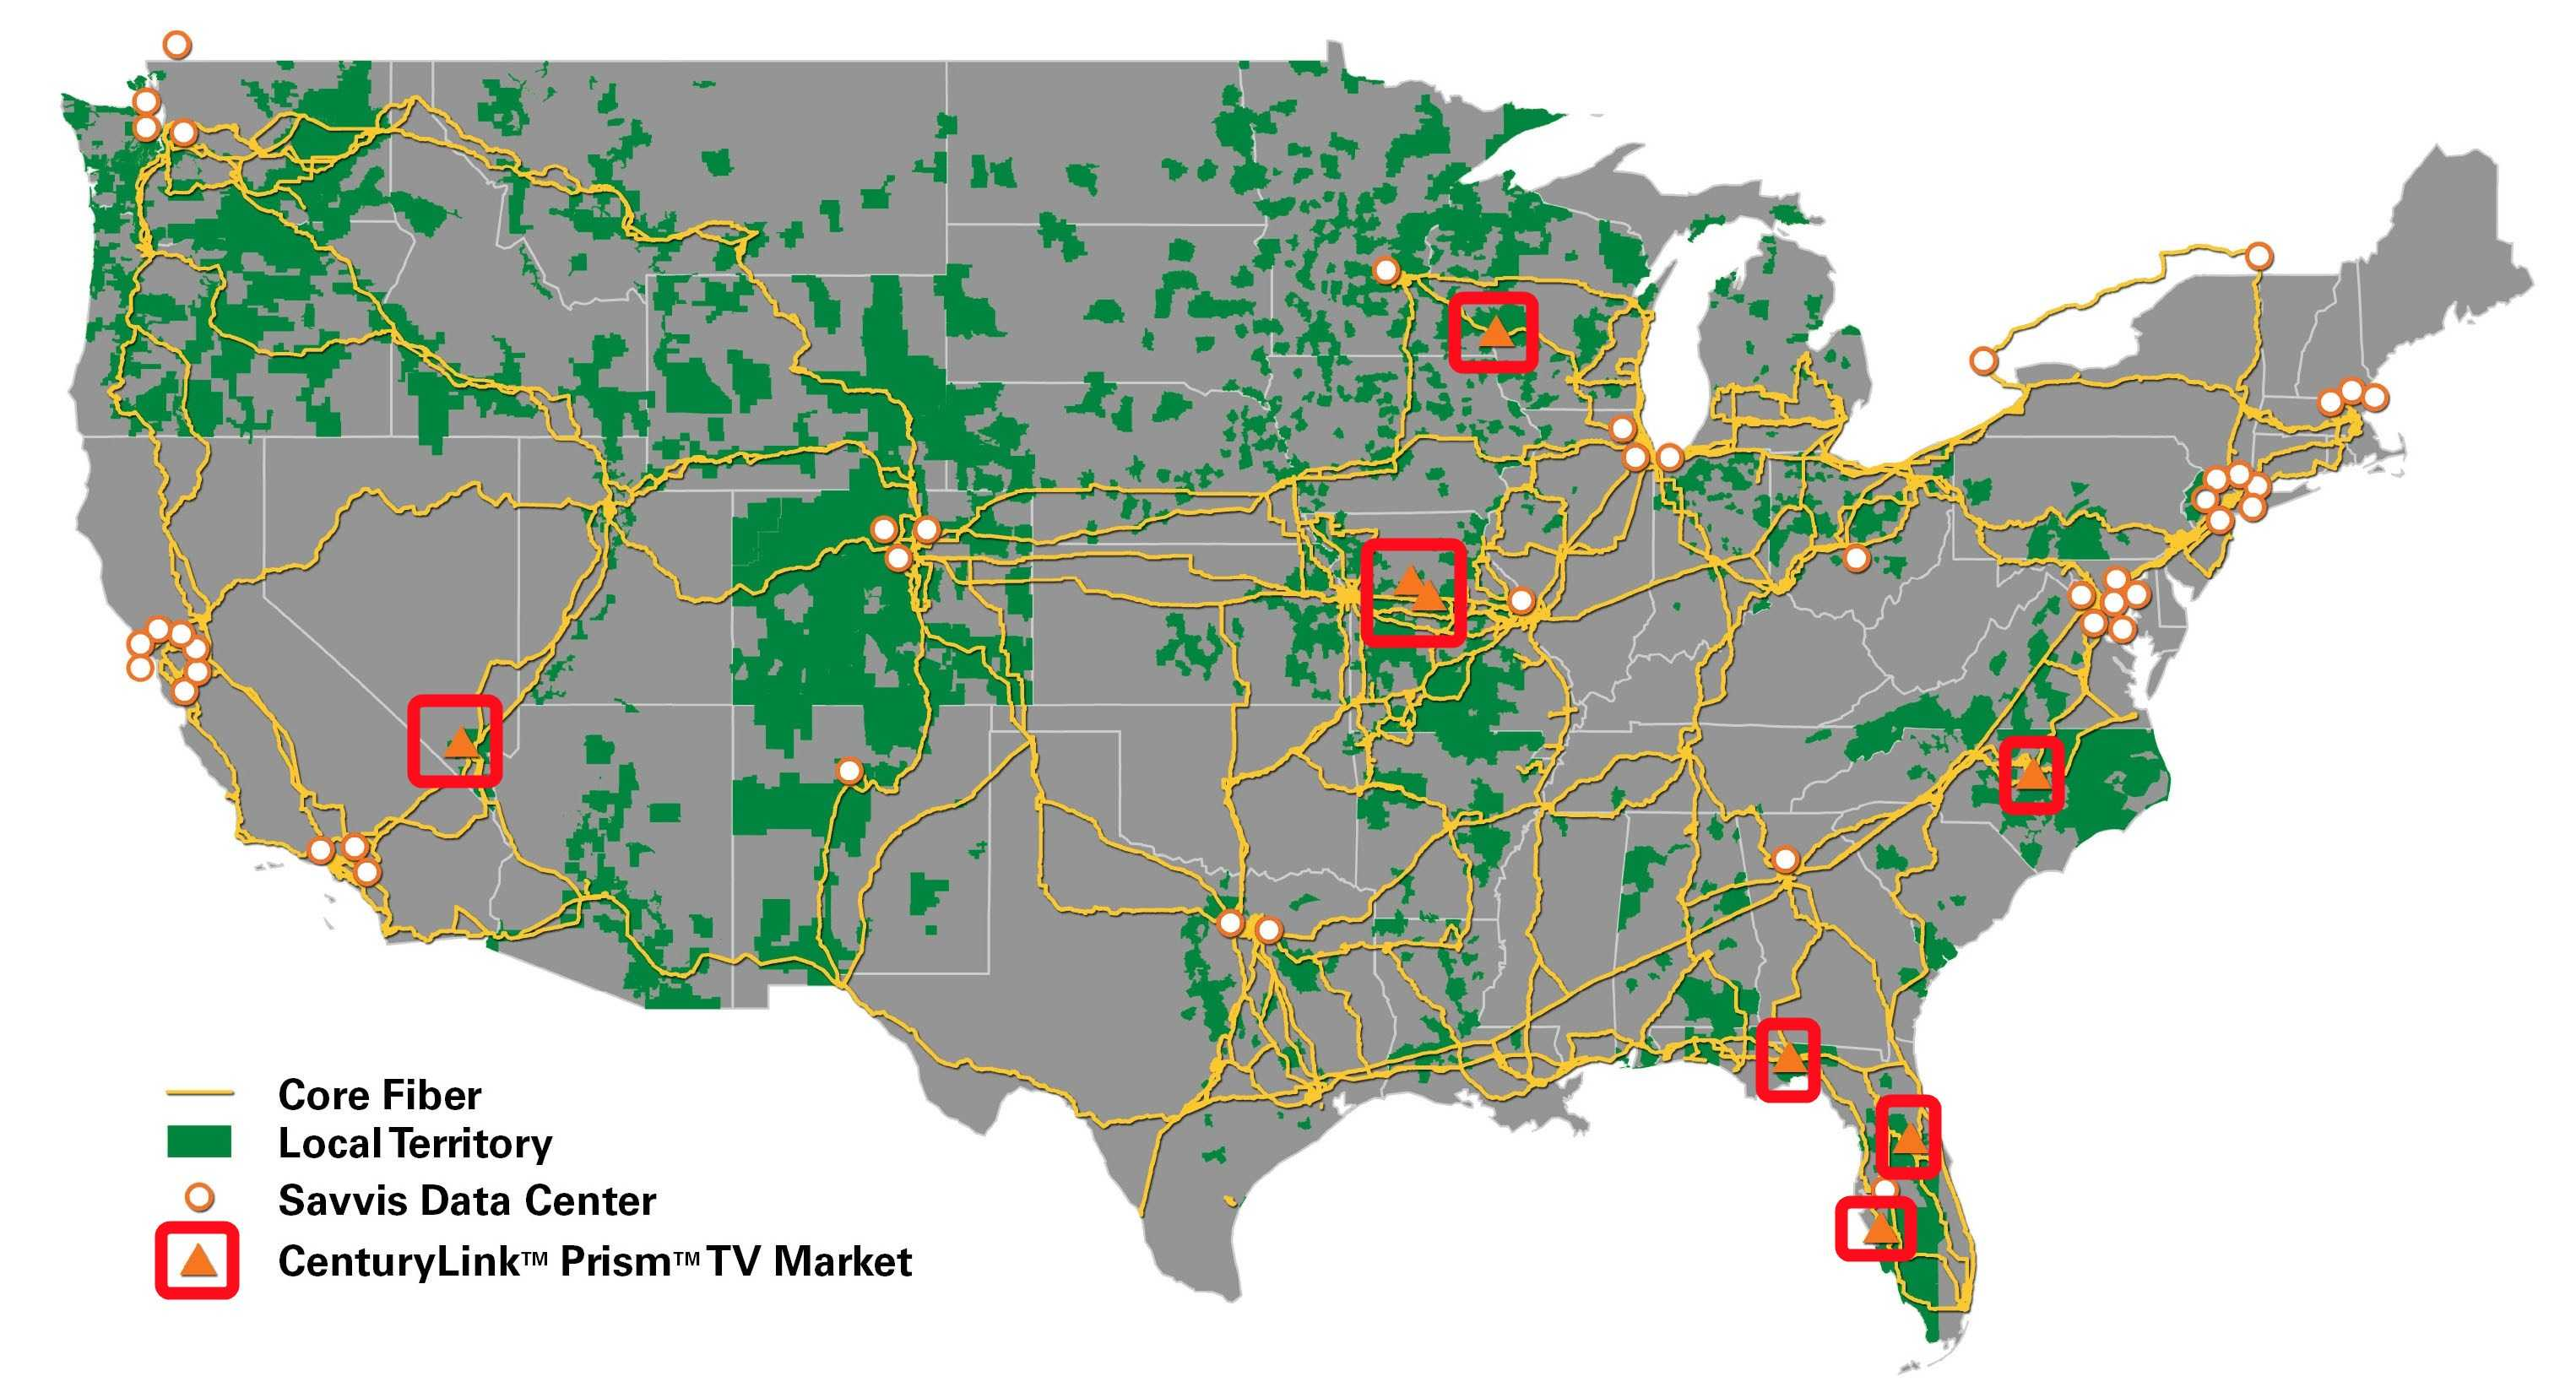 att dsl map with Ments on ments additionally Att Now Showing 4g Hspa Coverage Map furthermore Index likewise Heres Atts 14b Plan To Kill Its Copper  work And Leave Rural America Behind furthermore Inter  Outage Map Outage Map From Morning 1 Indicated Widespread Outages Across The Country For The Second Time This Week Cox Inter  Outage Map New Orleans.